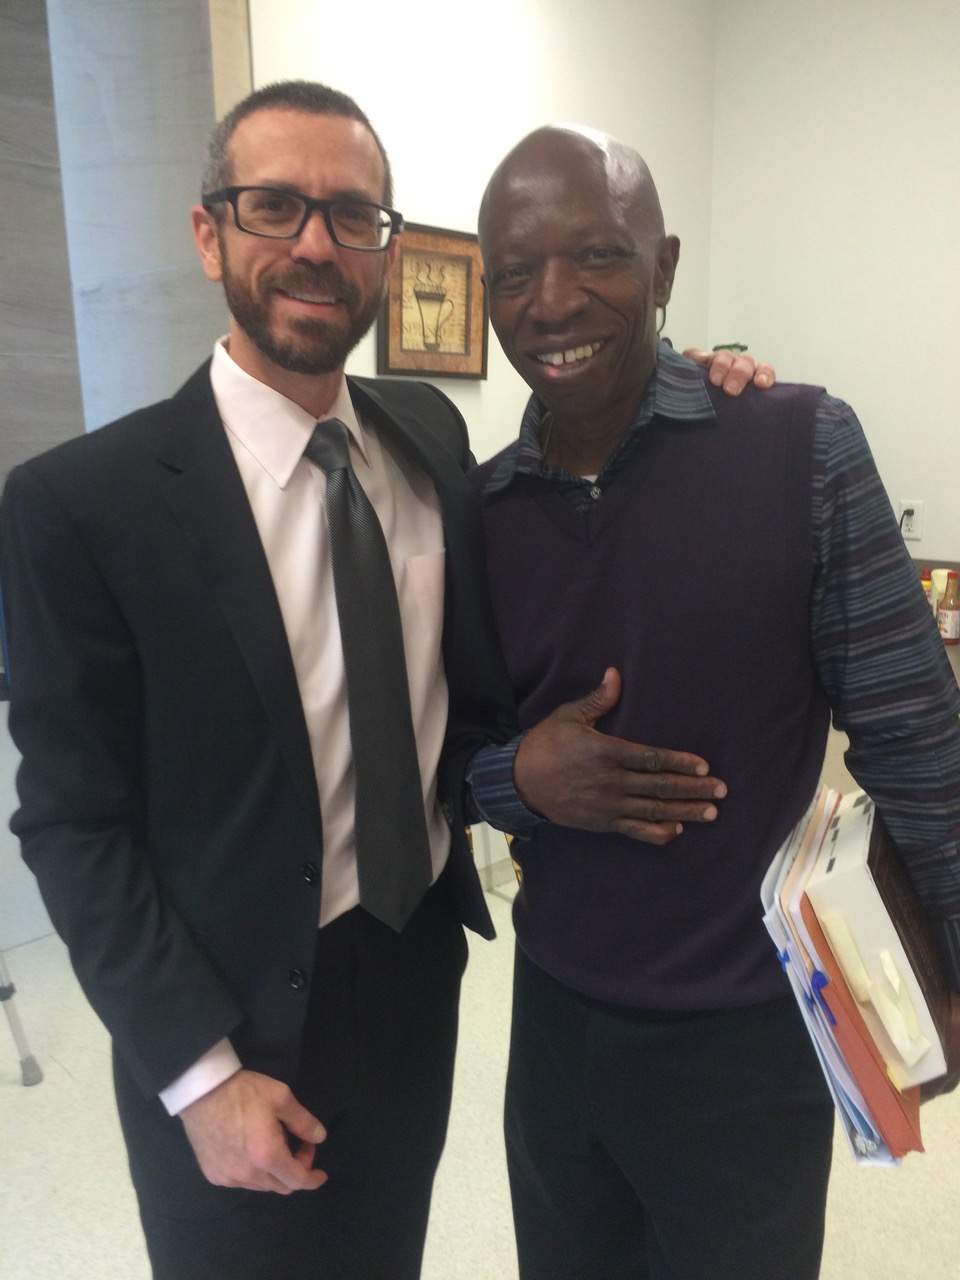 Attorney Eric Klein stands with Clarence Moses-El after a status hearing in Denver's courthouse. (Credit: Eric Klein)